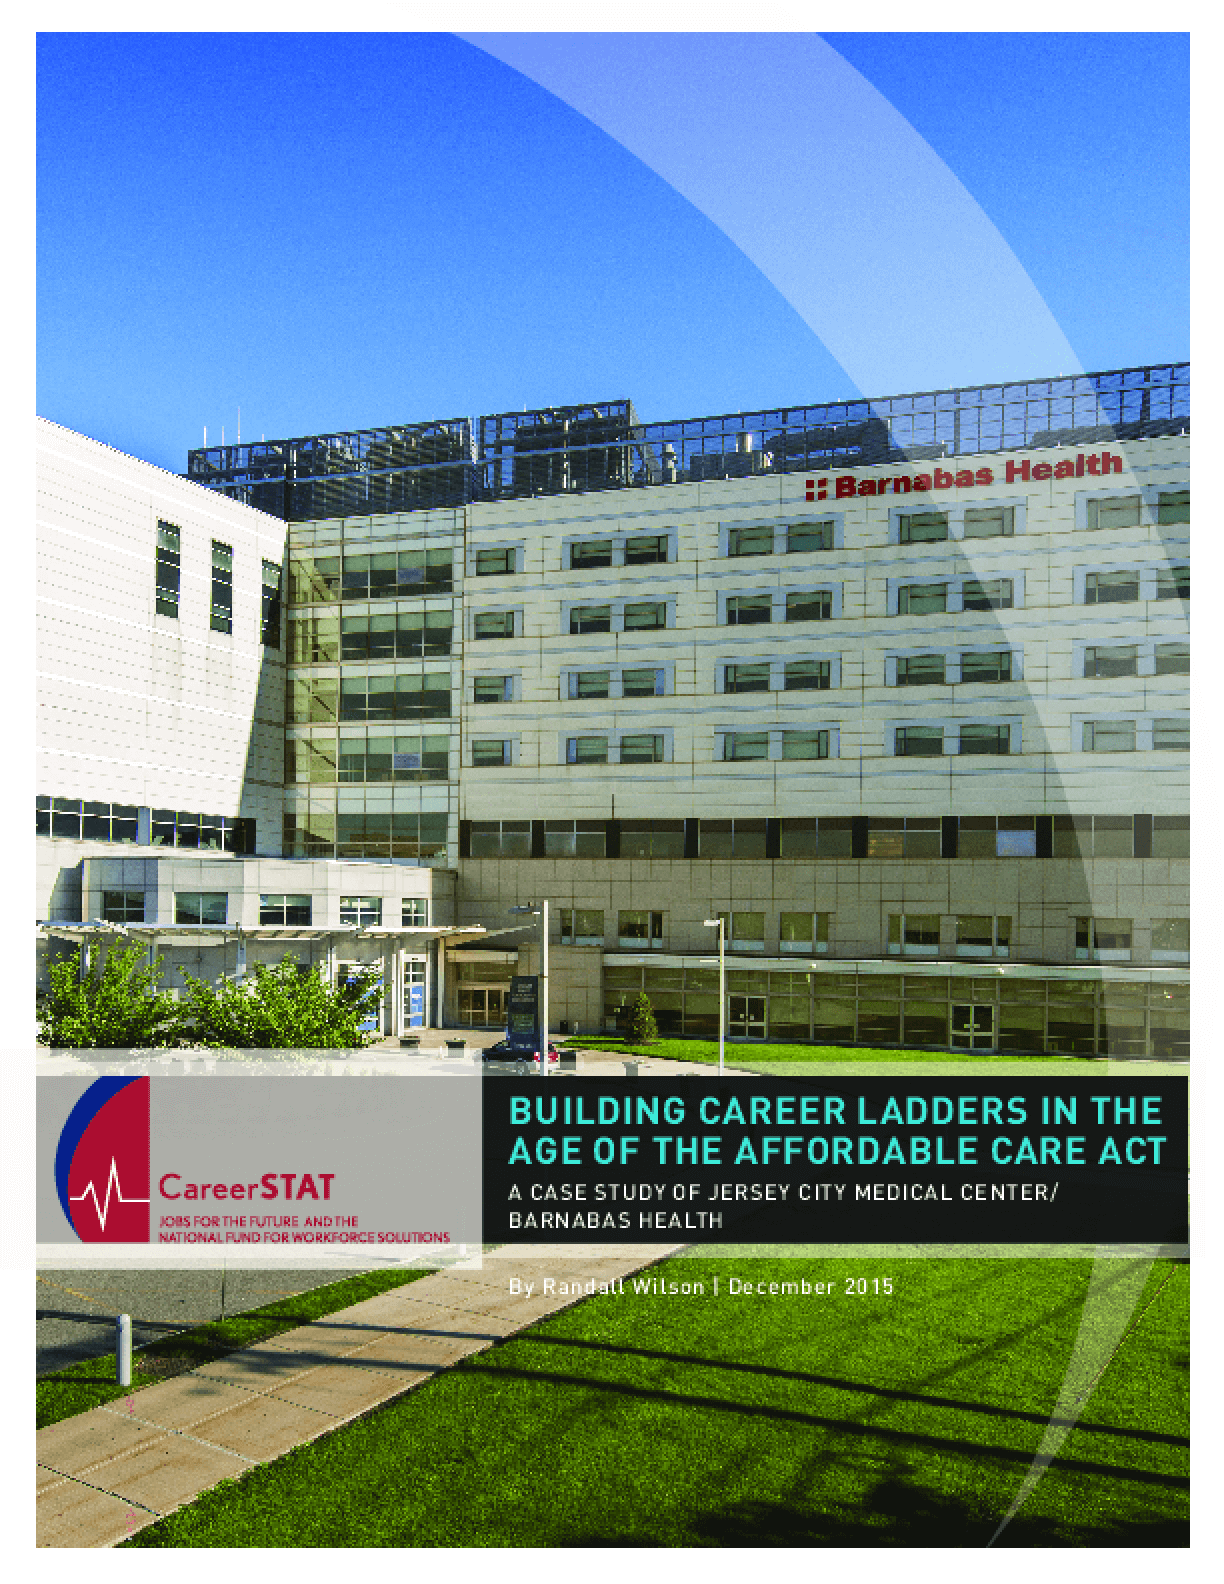 Building Career Ladders in the Age of the Affordable Care Act